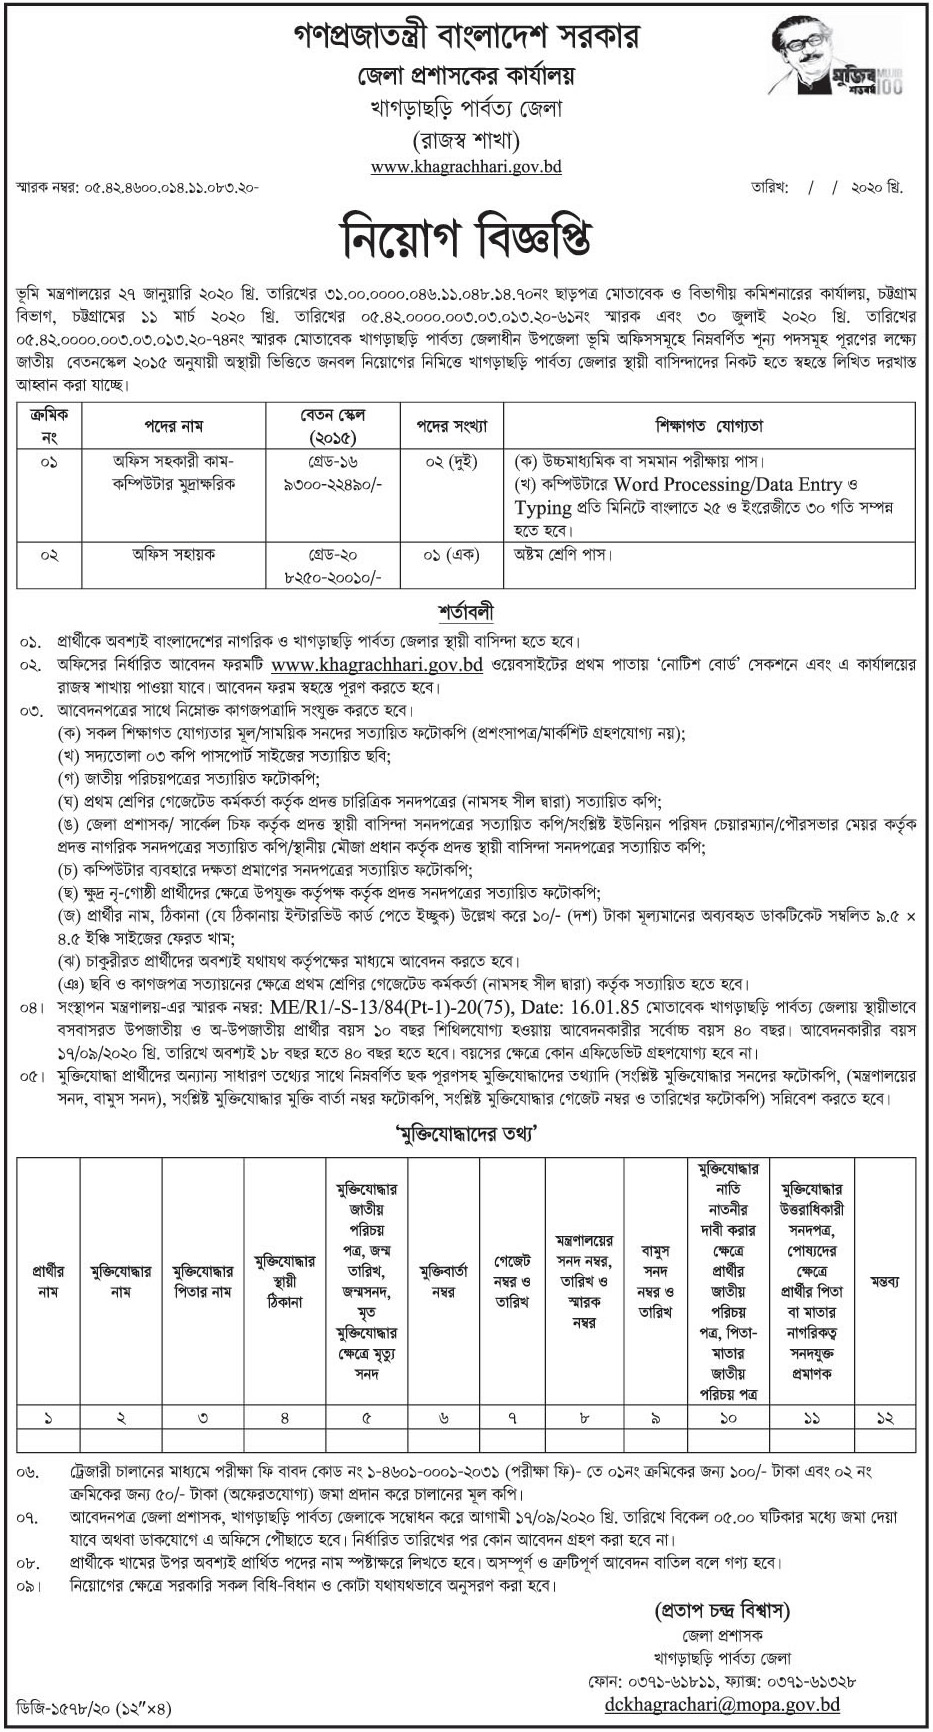 District Commissioner's Office Job Circular 2020